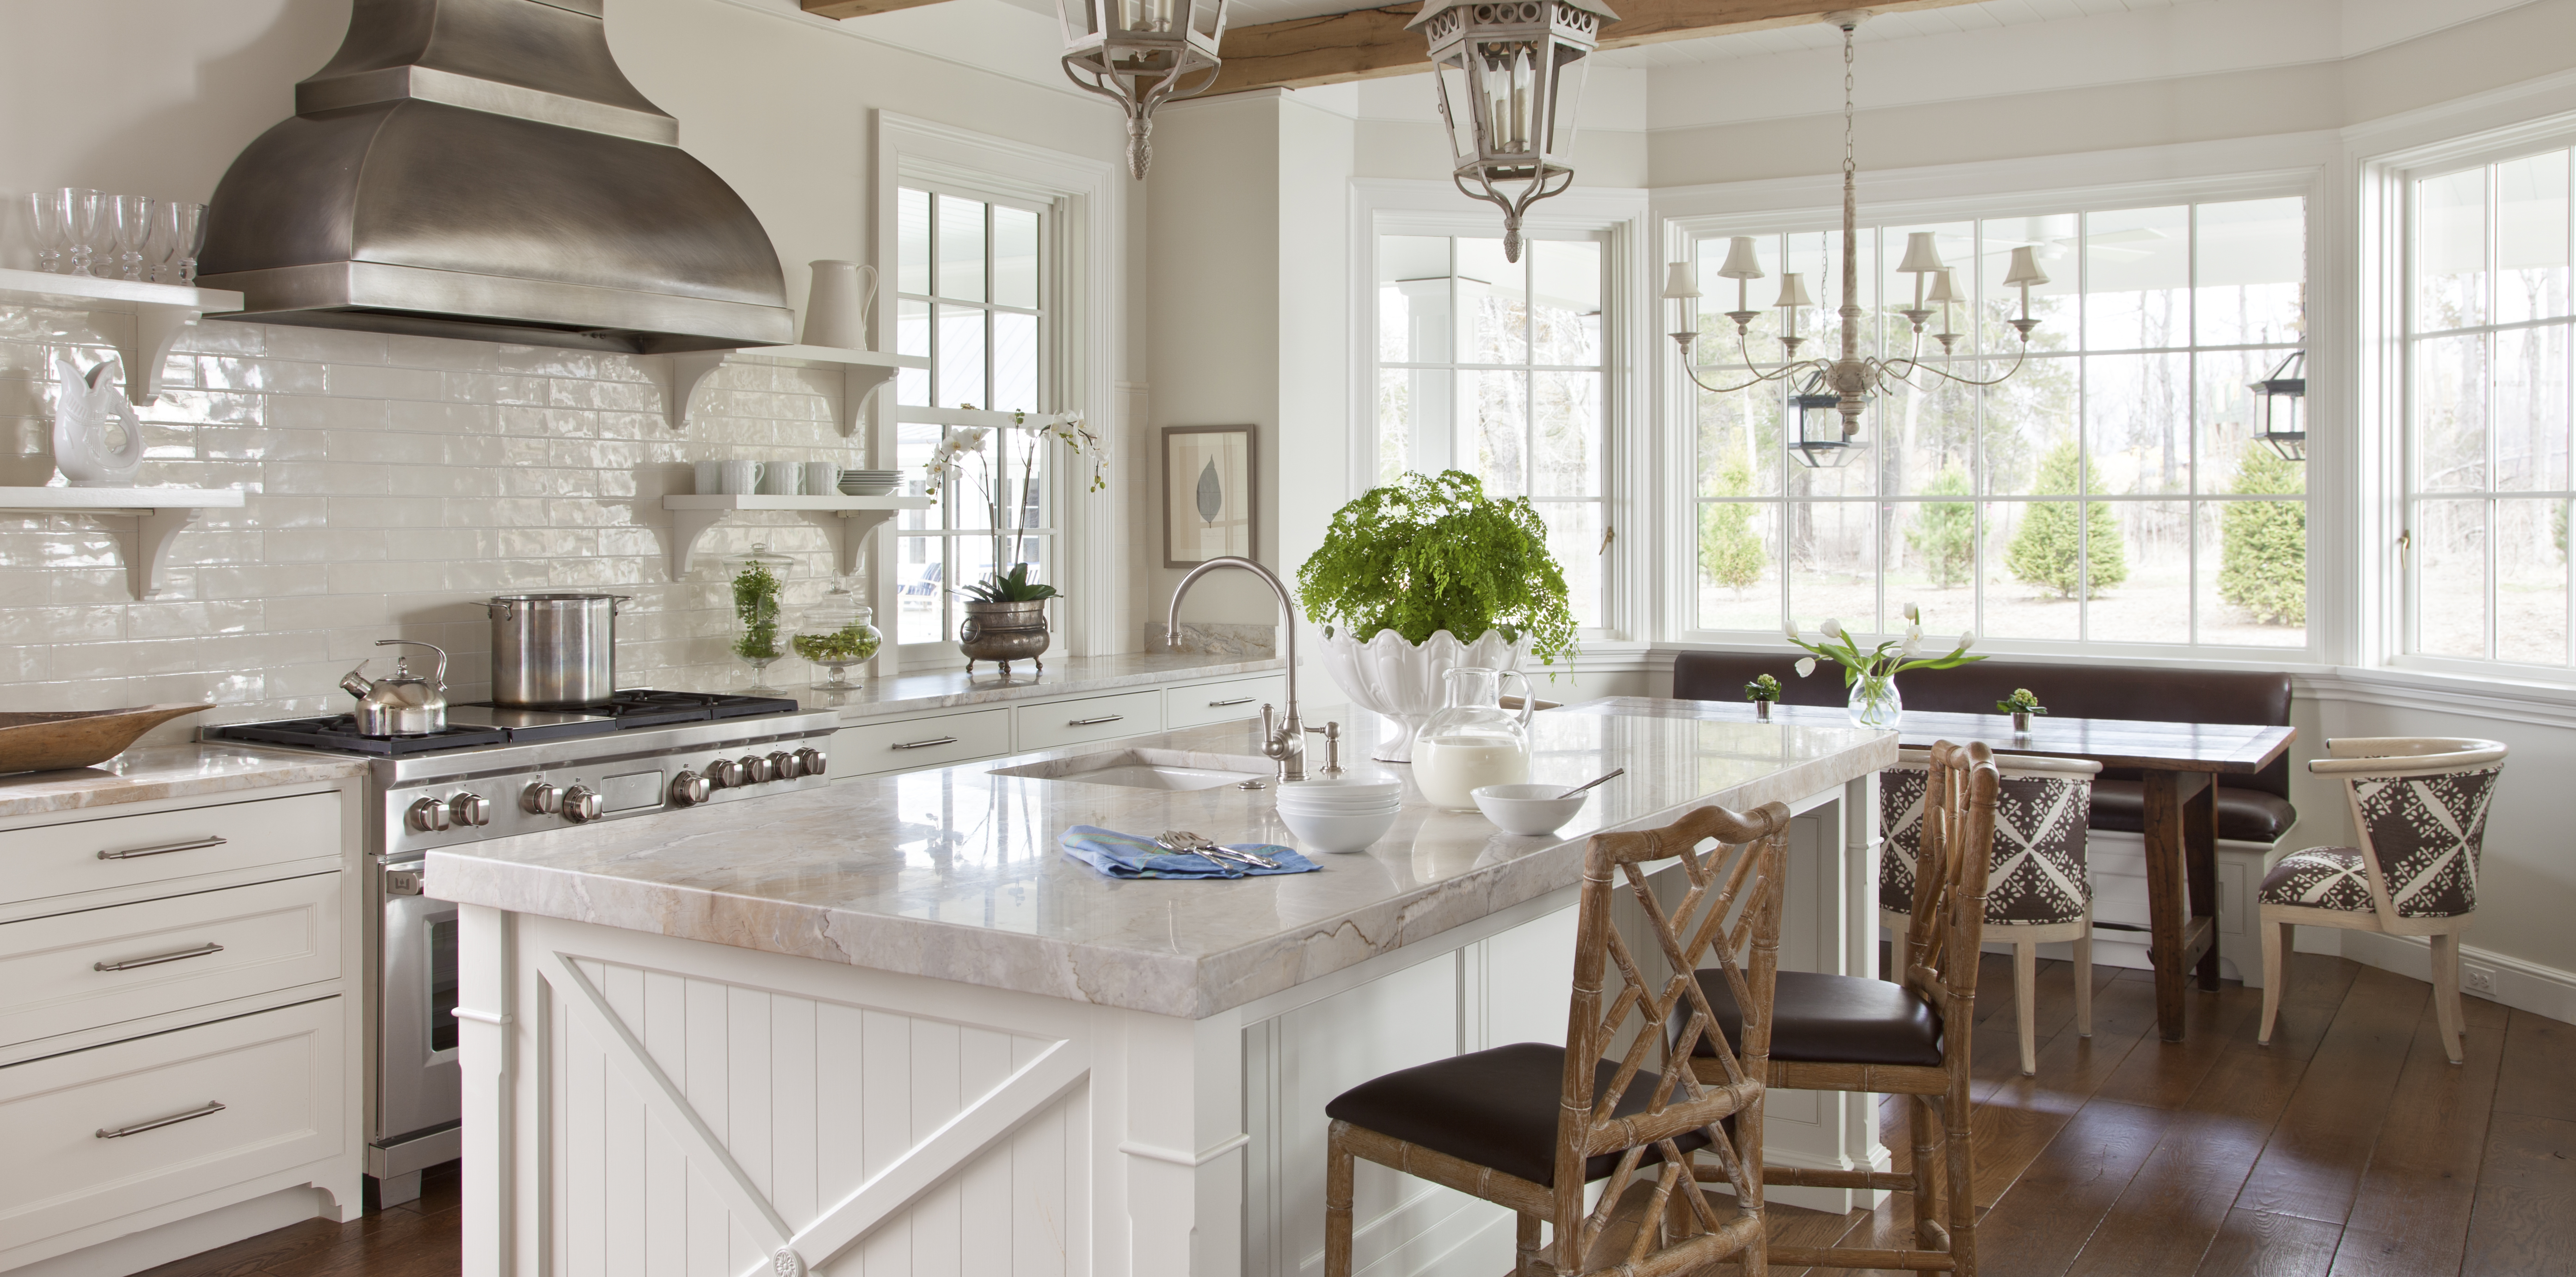 kitchen cabinetry charlottesville